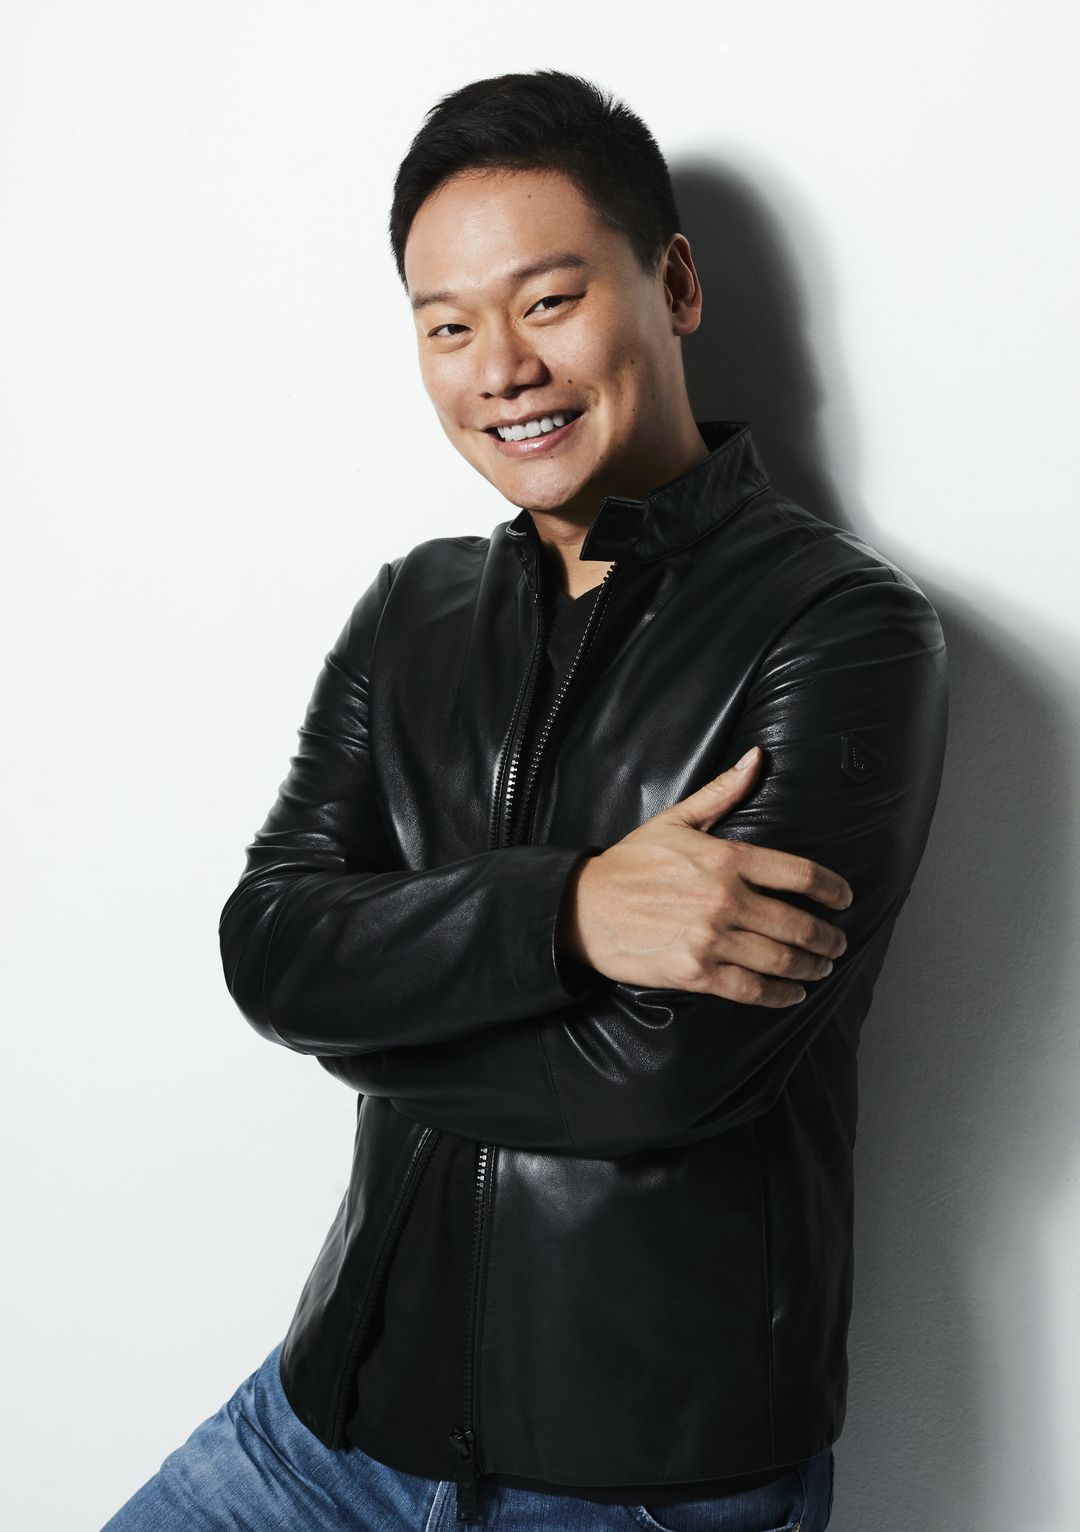 Zouk in Vegas? Yes, says its CEO